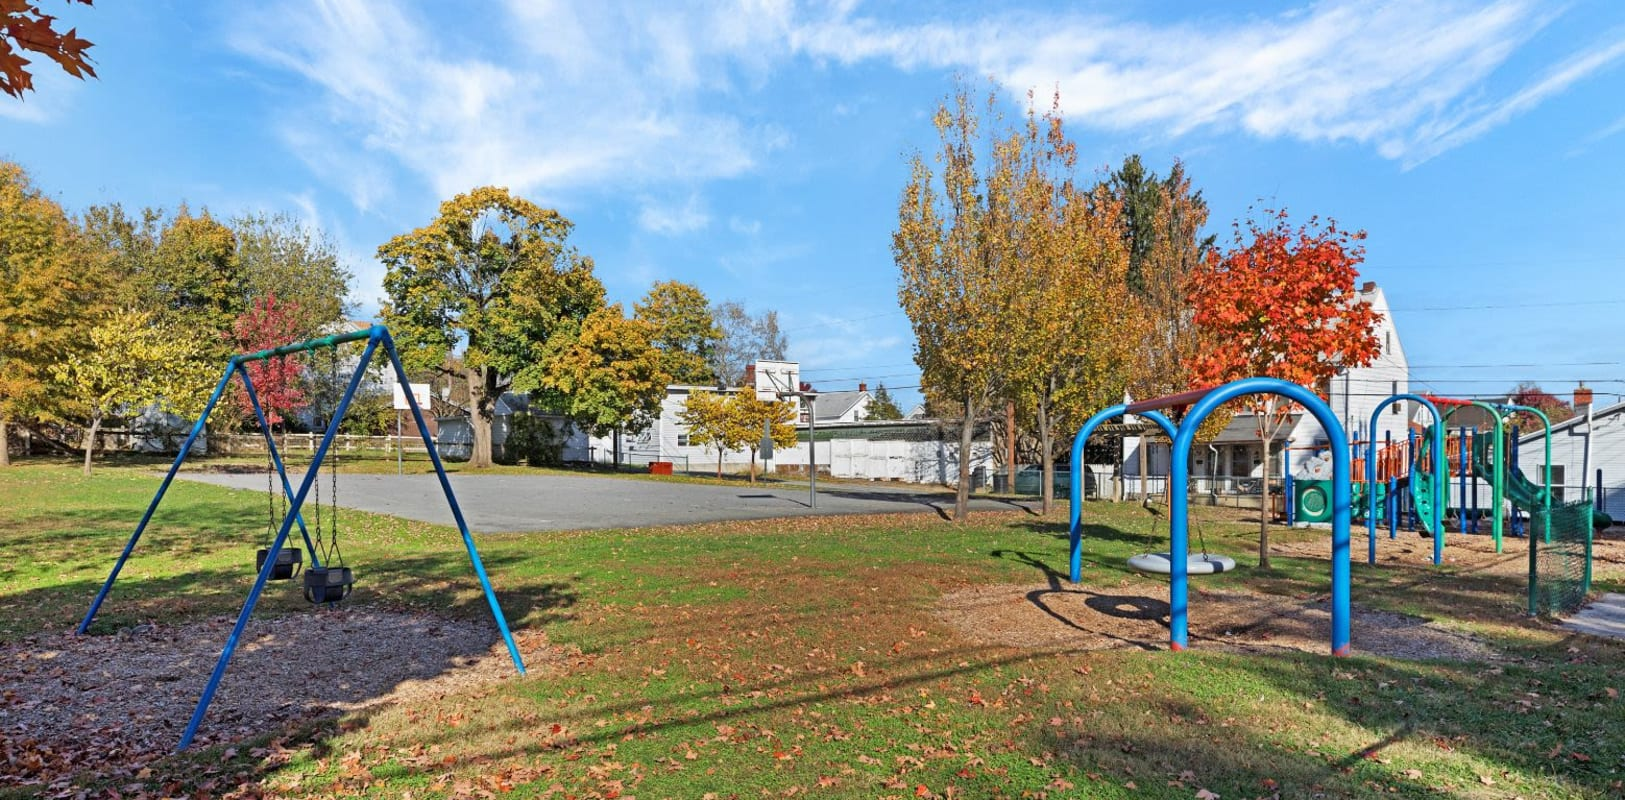 Playground at Bethlehem Towers in Bethlehem, Pennsylvania